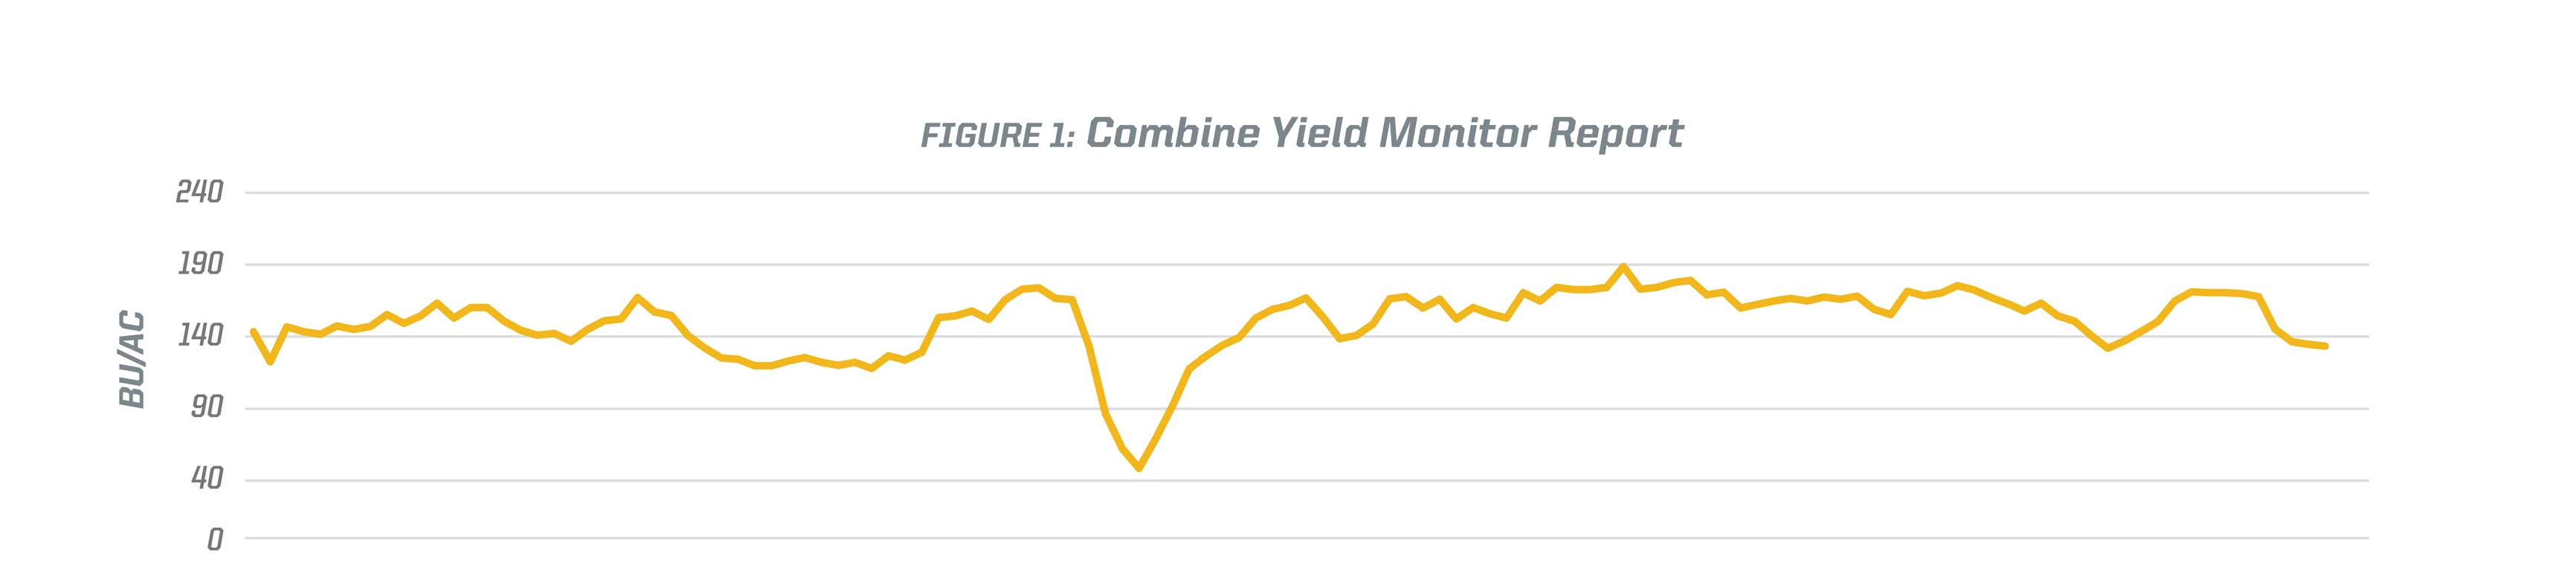 This yield report was pulled to demonstrate the yield variability of the 1.35 acres harvested for the study. The field experienced above normal rainfall during much of the growing season.